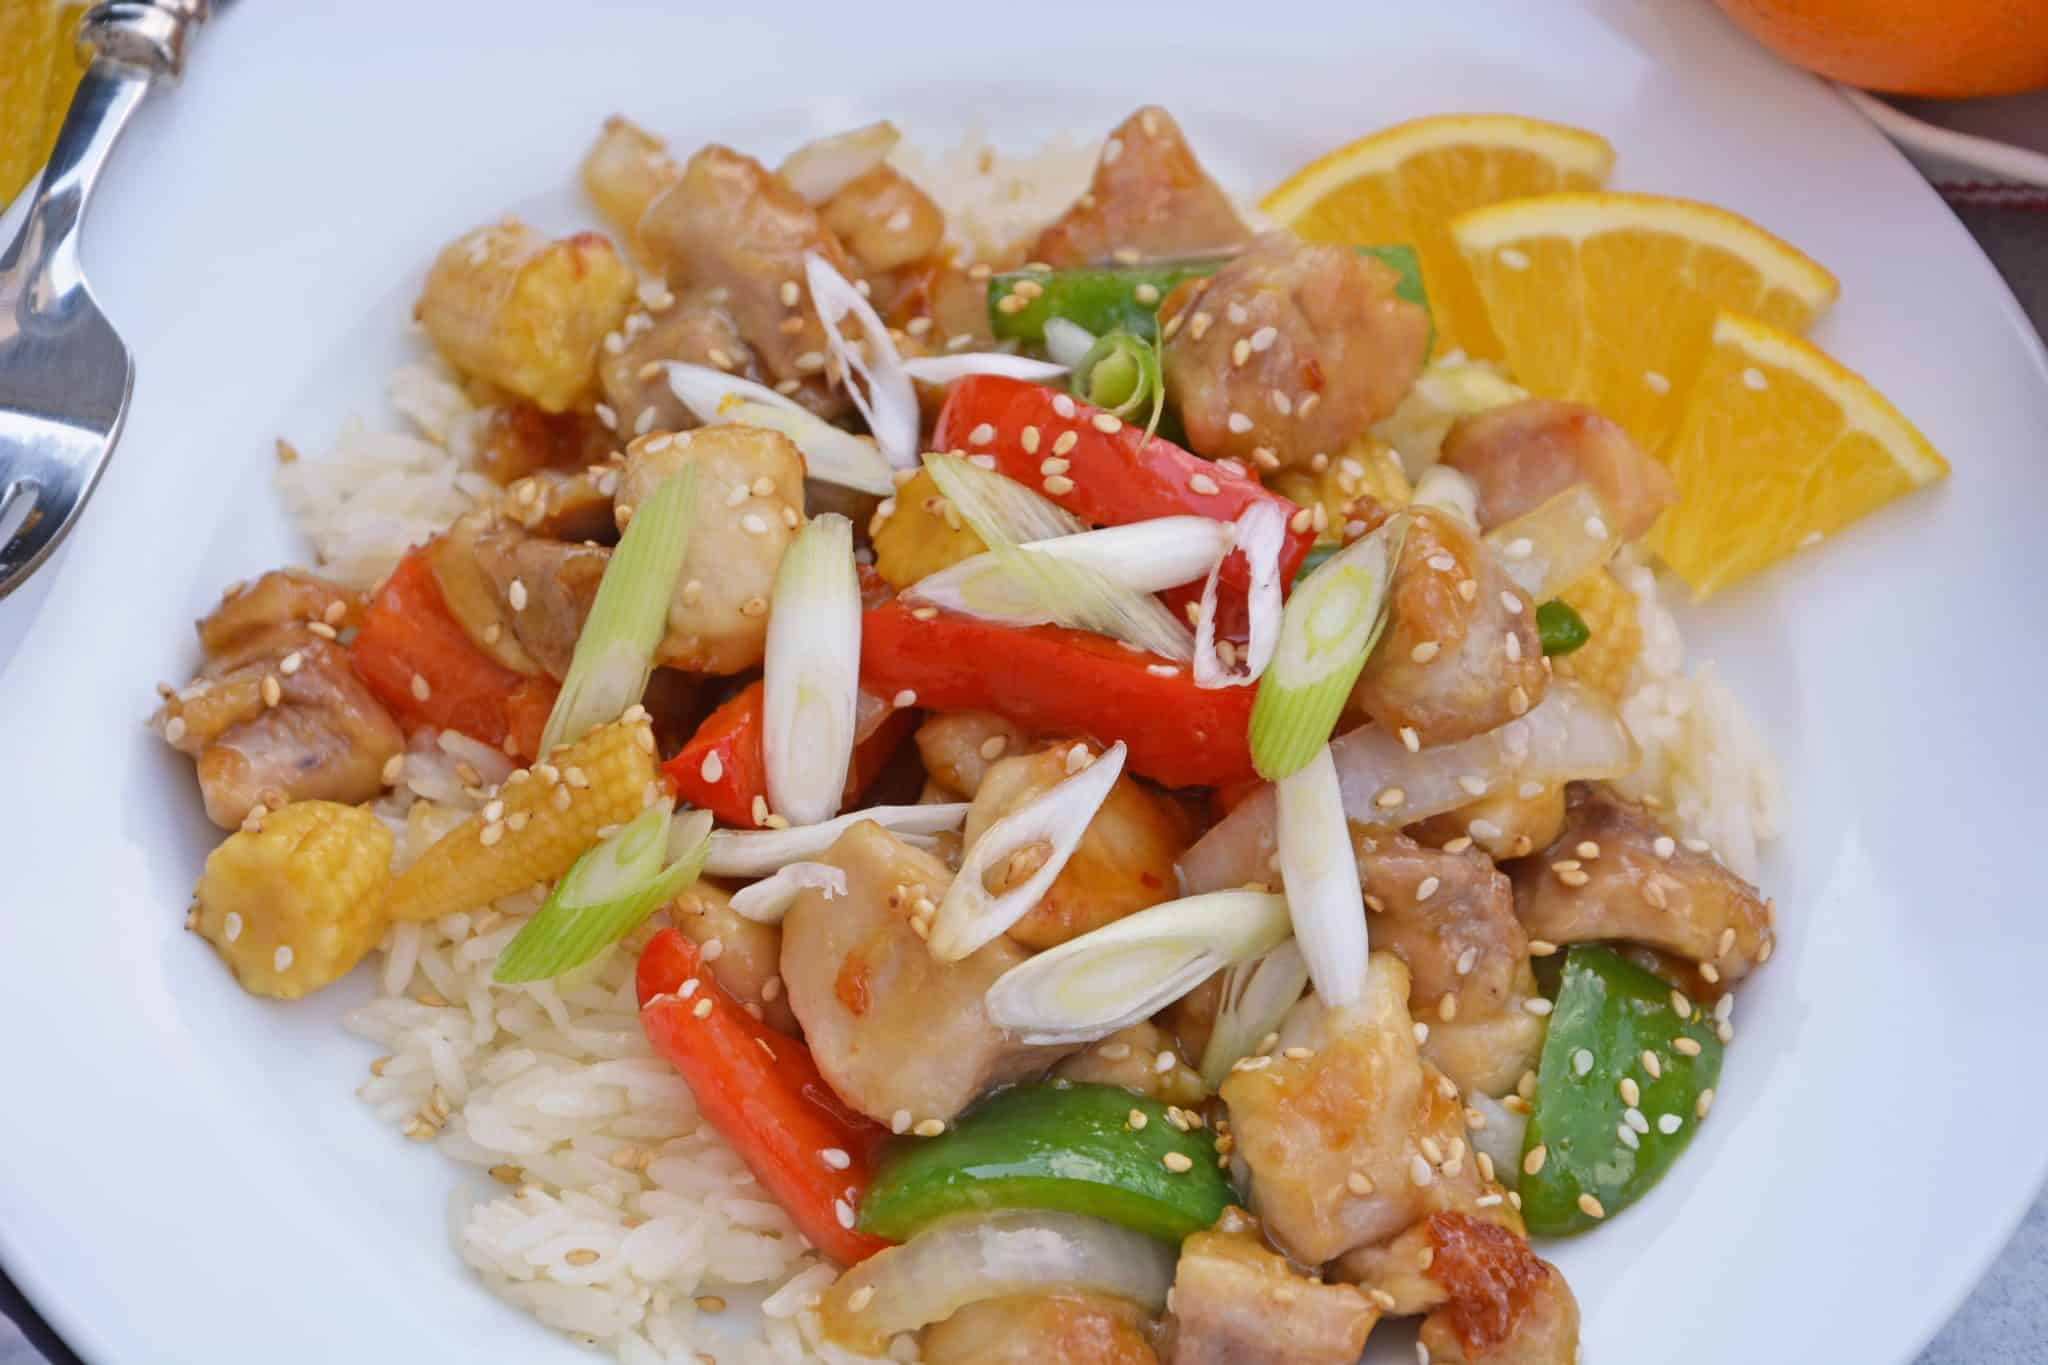 Orange chicken in a white dish - quick and easy meals